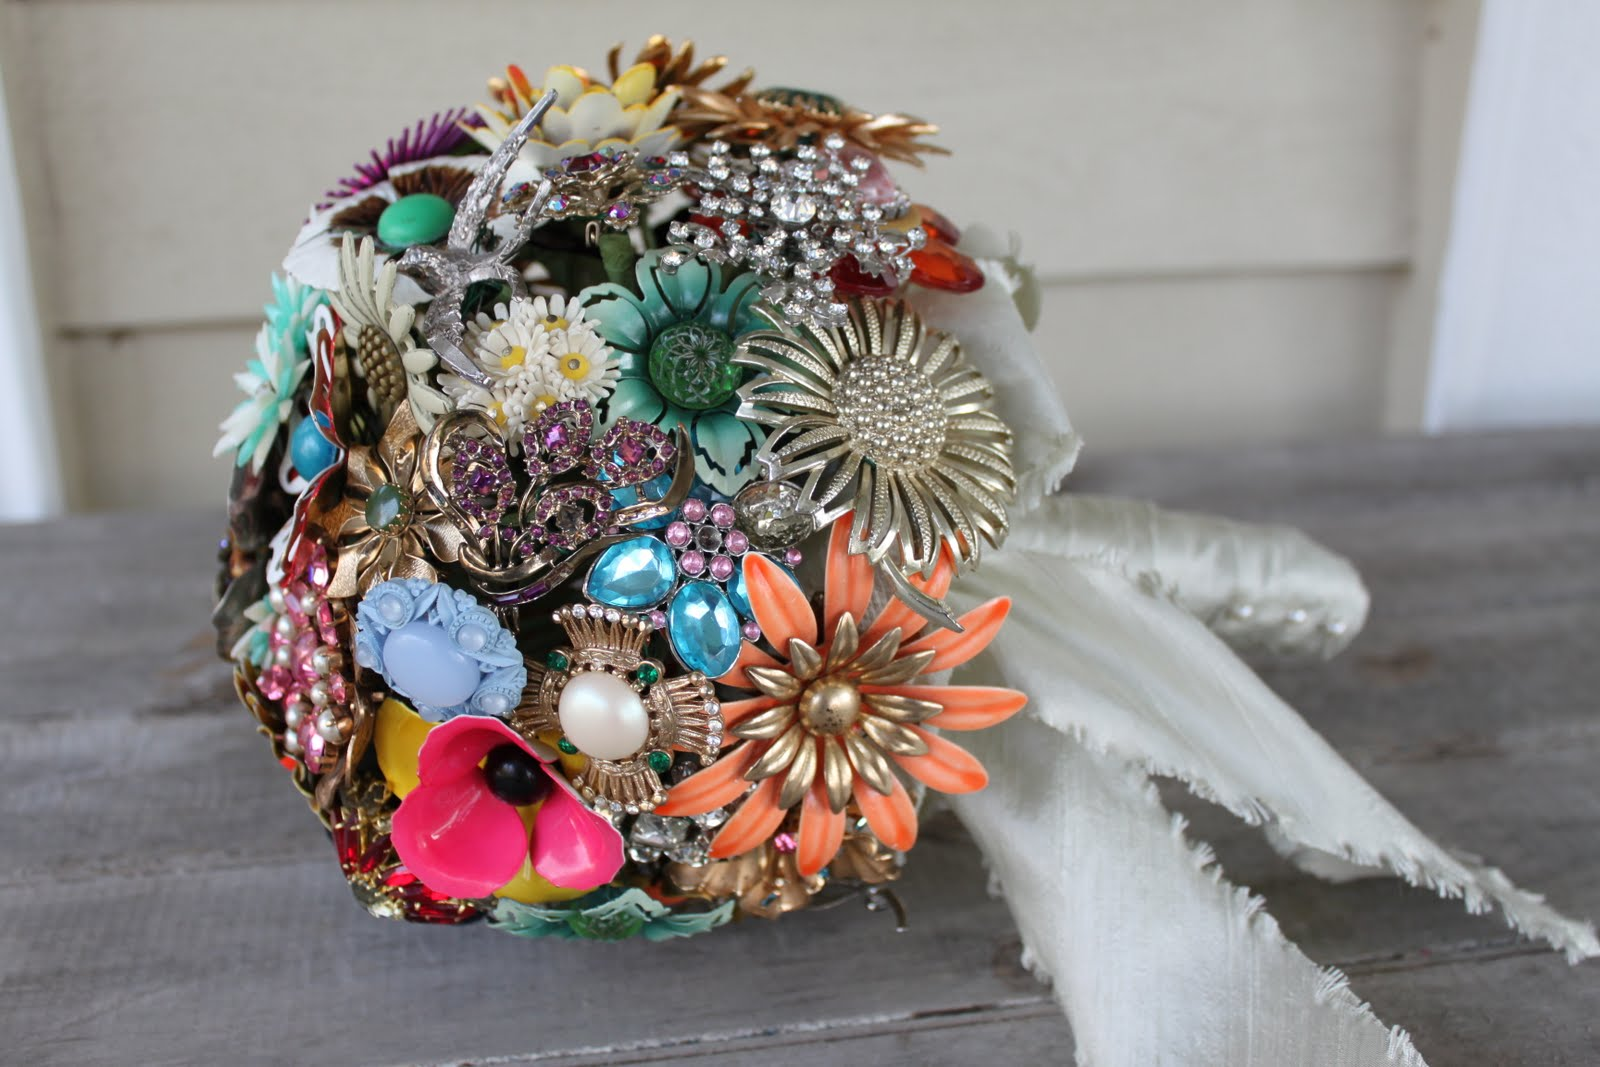 Quirks kisses inspired life vintage brooch bridal bouquet quirks kisses inspired life vintage brooch bridal bouquet izmirmasajfo